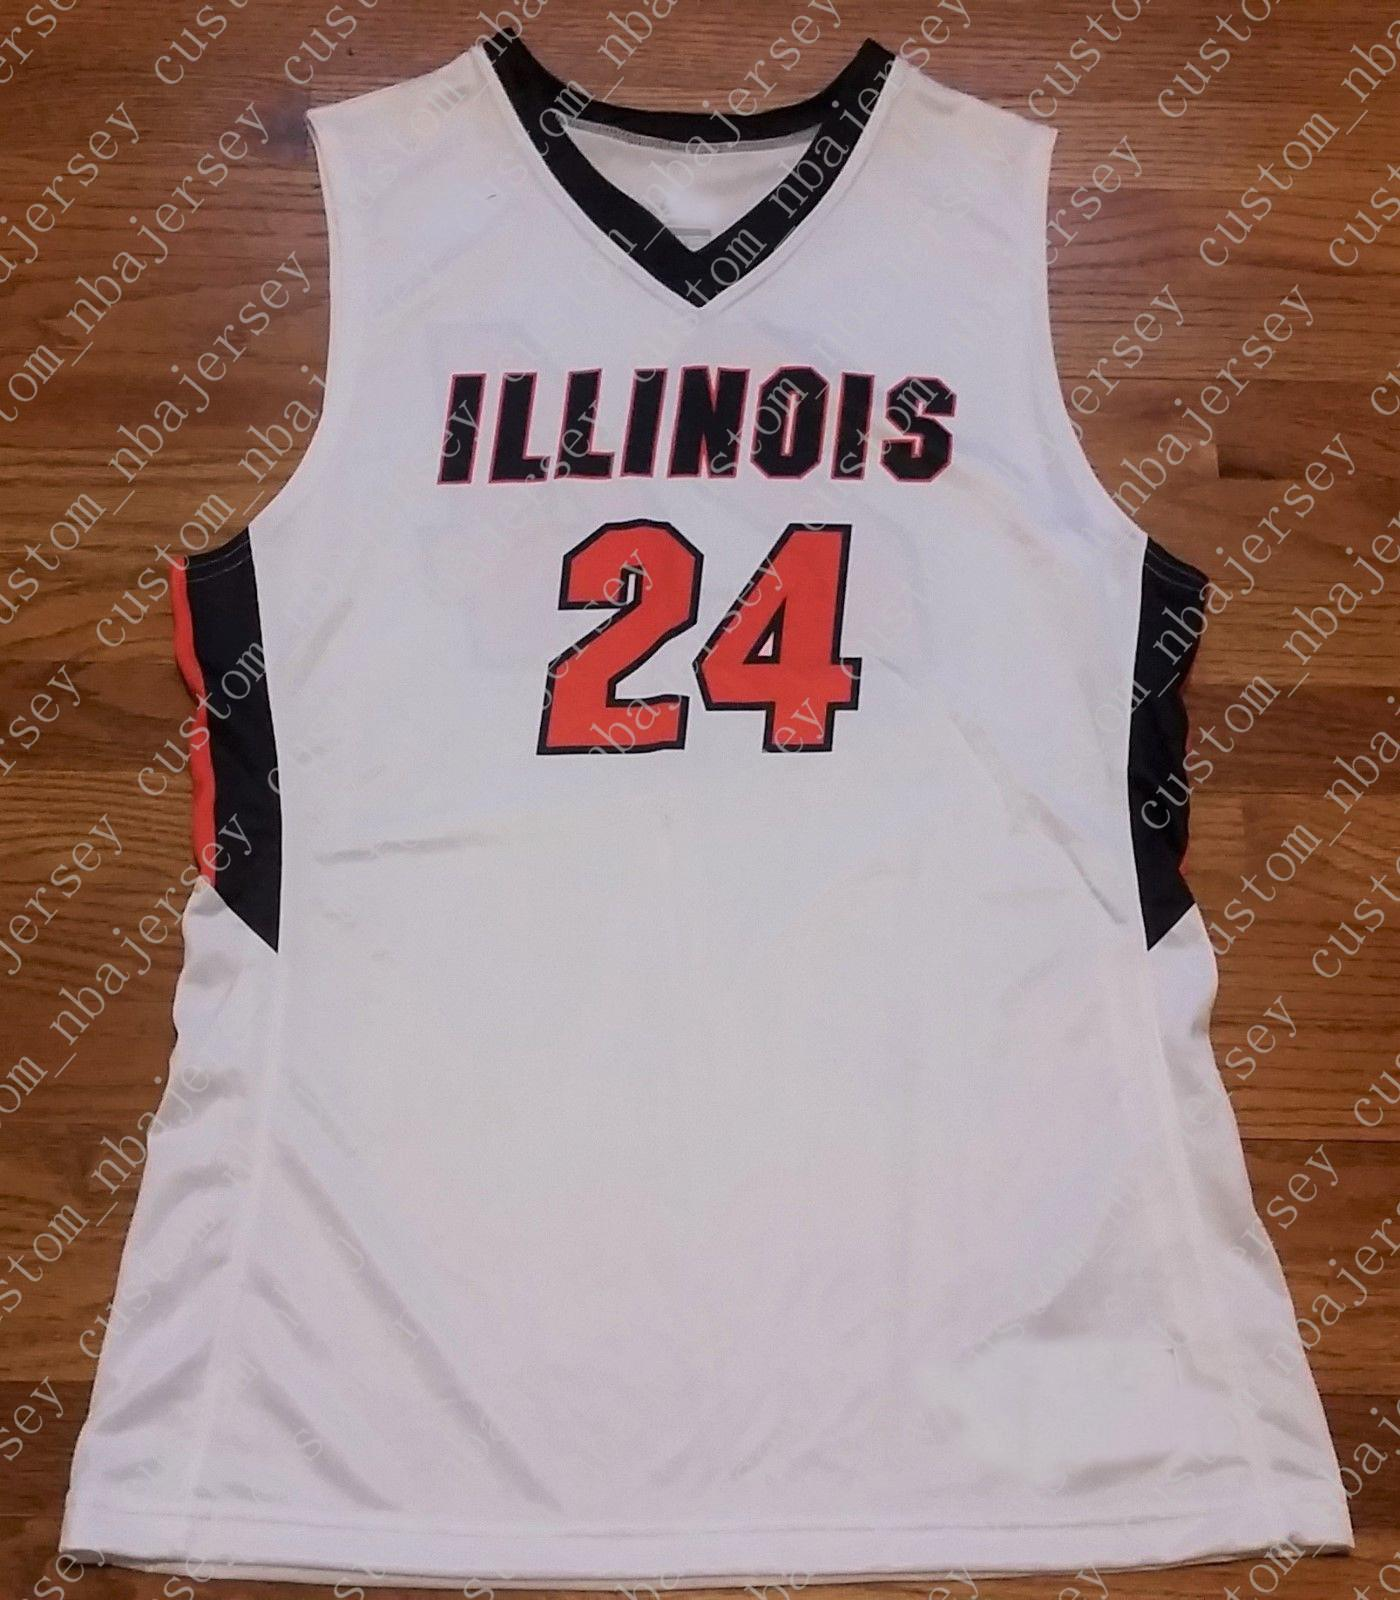 Cheap custom Illinois Fighting Illini Team Emerge Jersey #24 White Stitched Customize any number name MEN WOMEN YOUTH XS-5XL